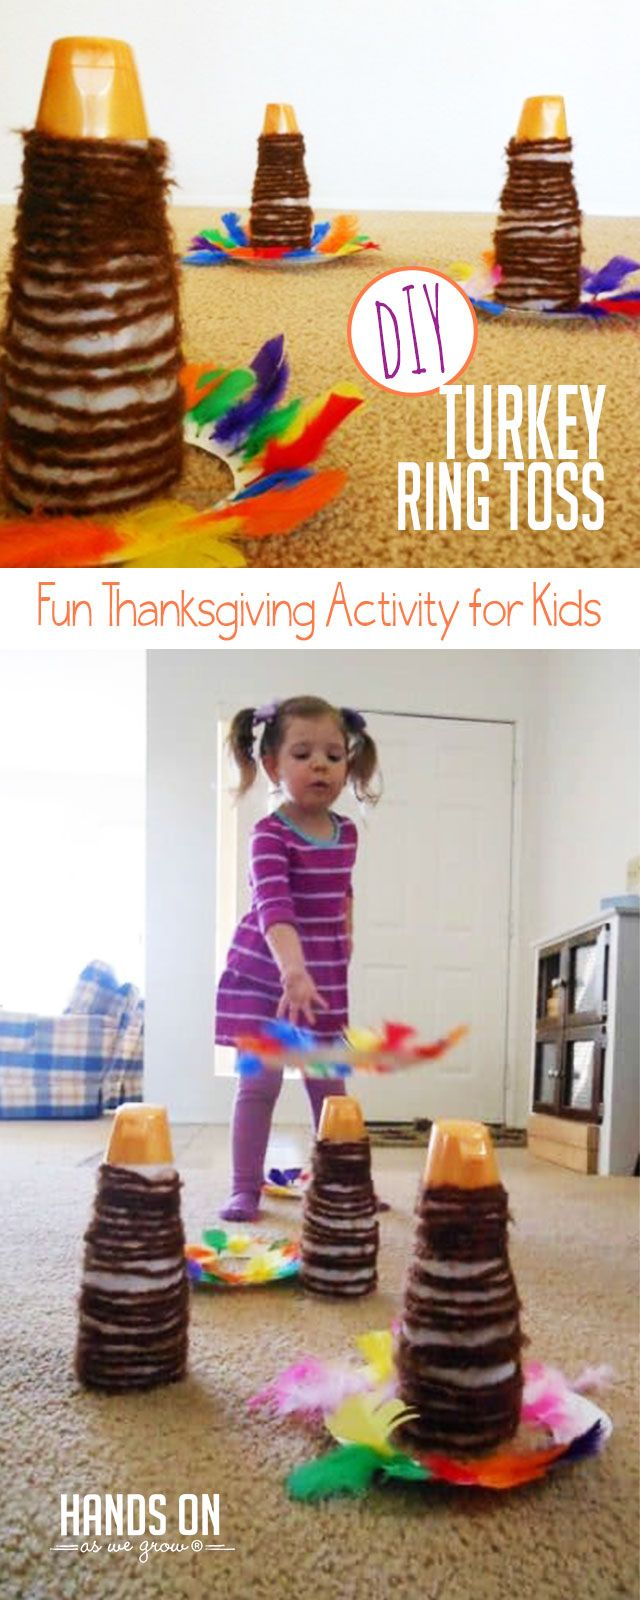 Super Simple Turkey Ring Toss Thanksgiving Activity for Kids | HOAWG